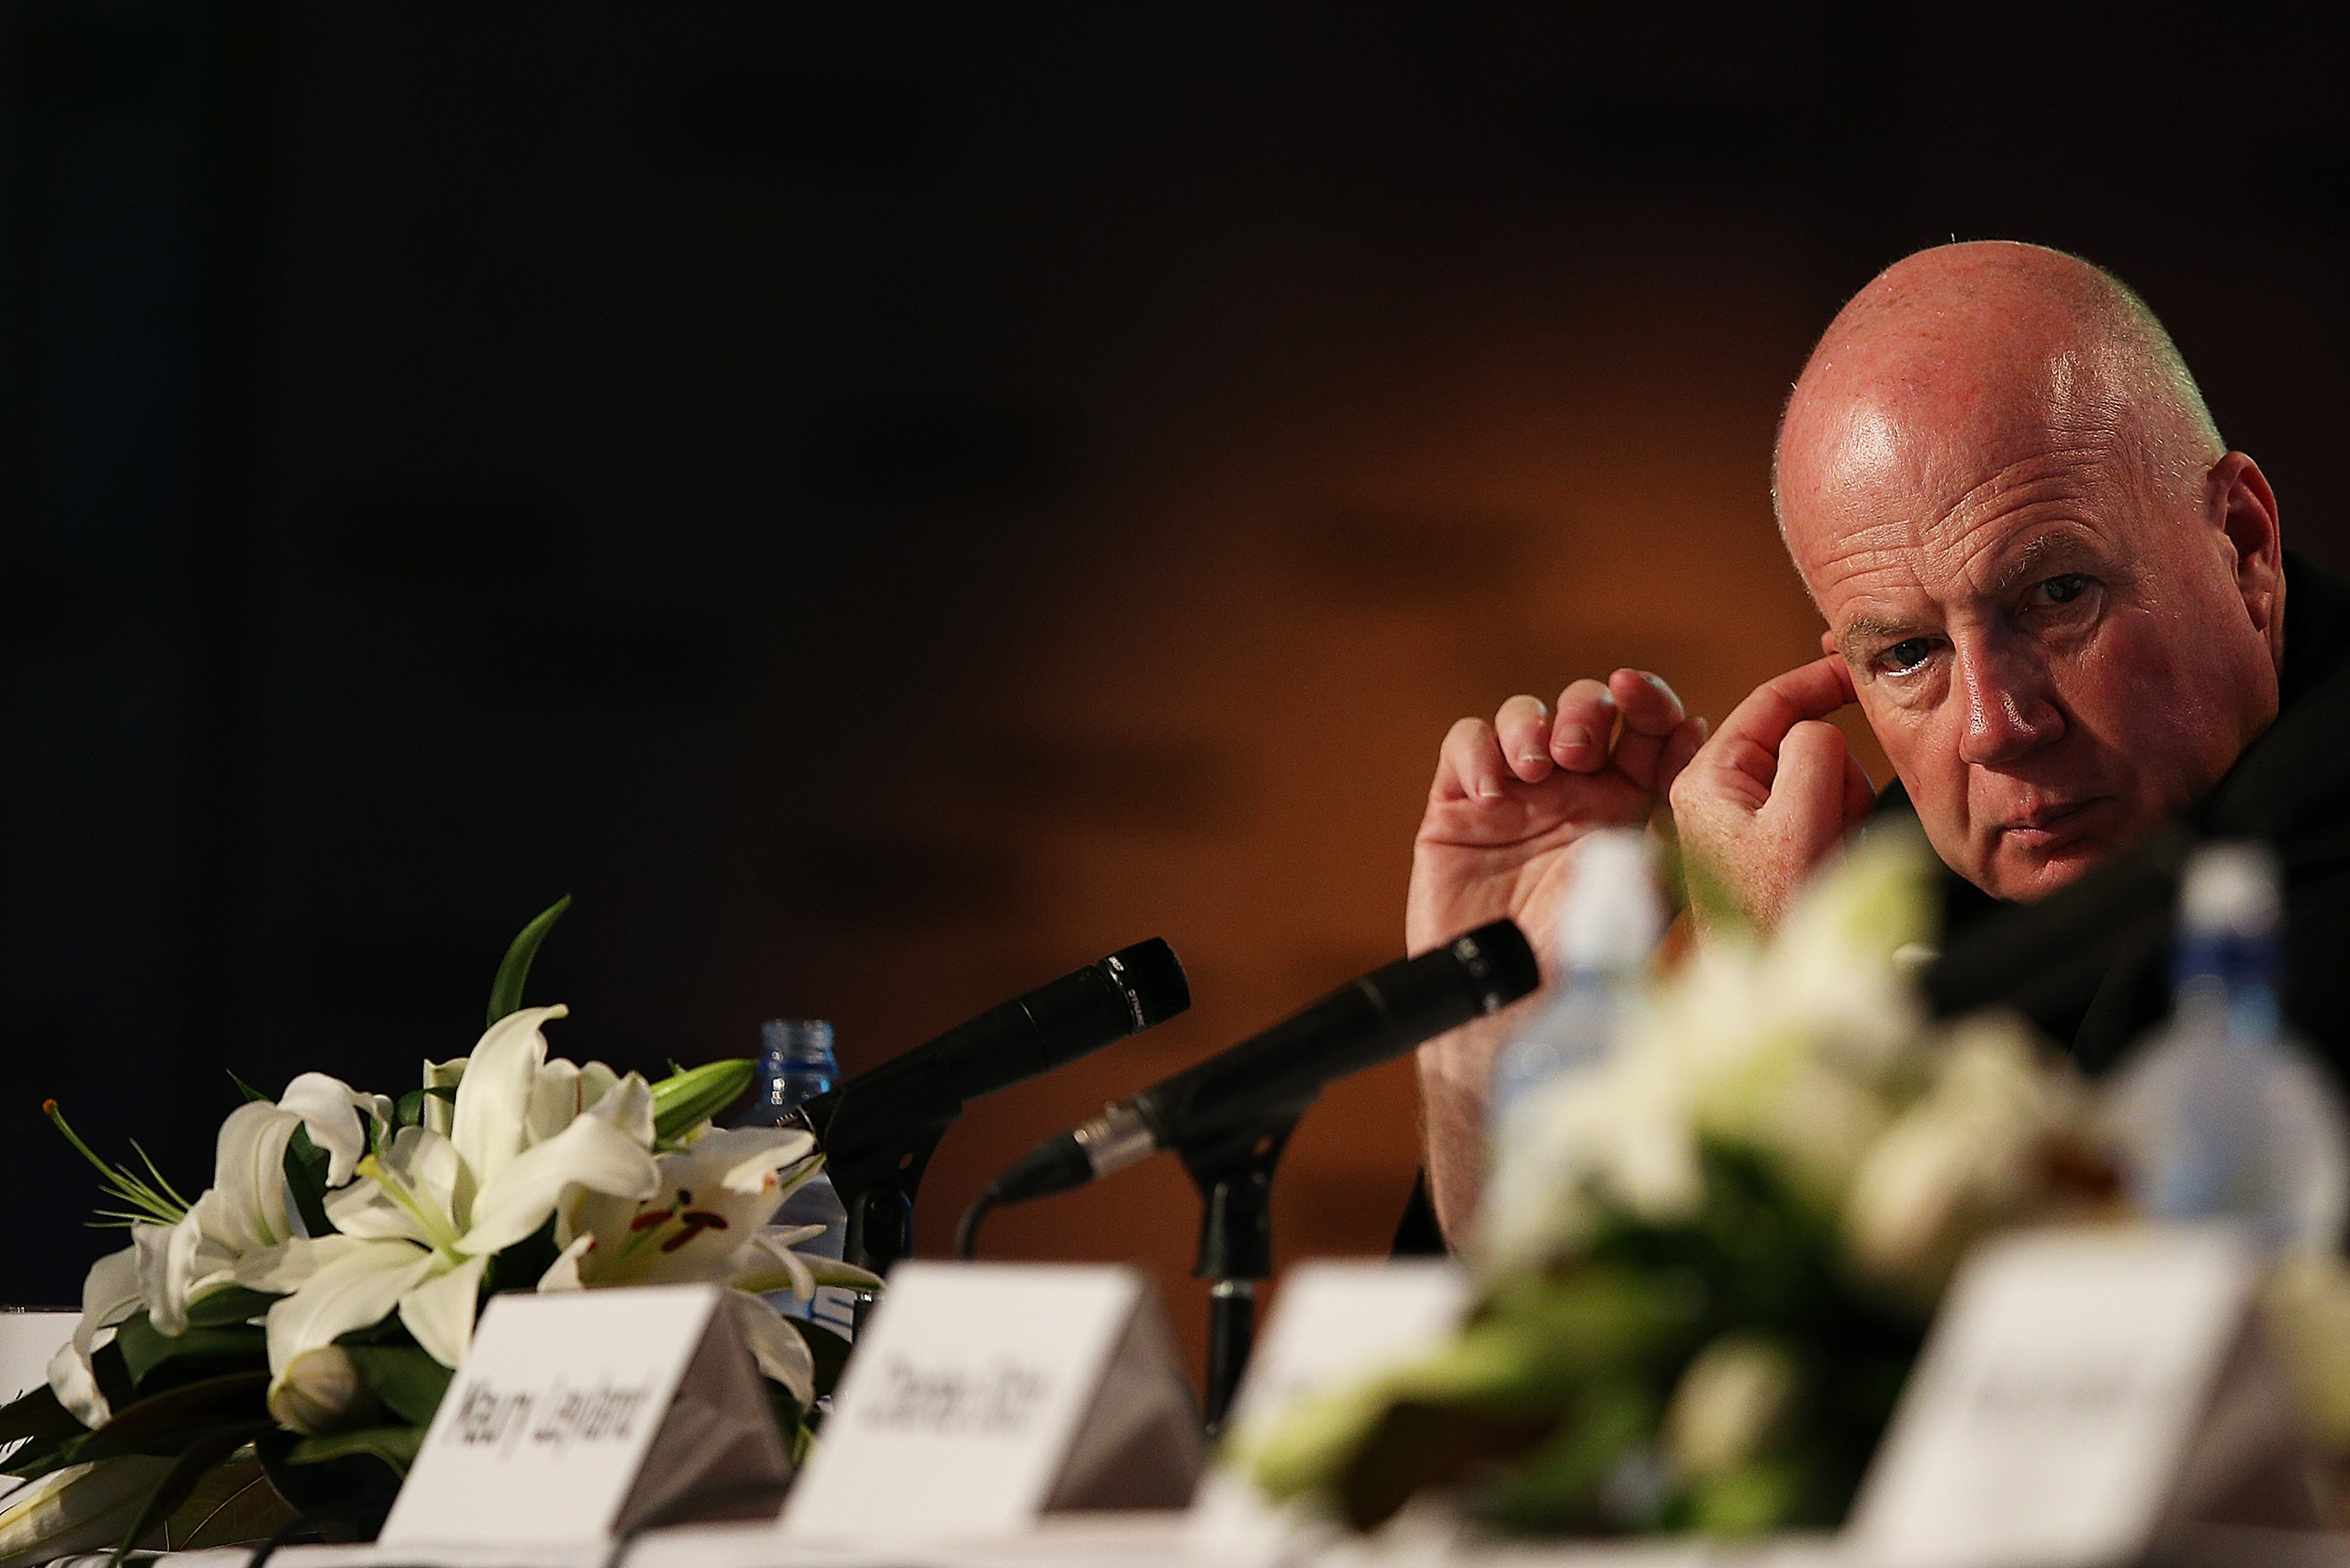 Board member Kevin Roberts attends the Telecom annual general meeting in Auckland, New Zealand on Sept. 28, 2012.